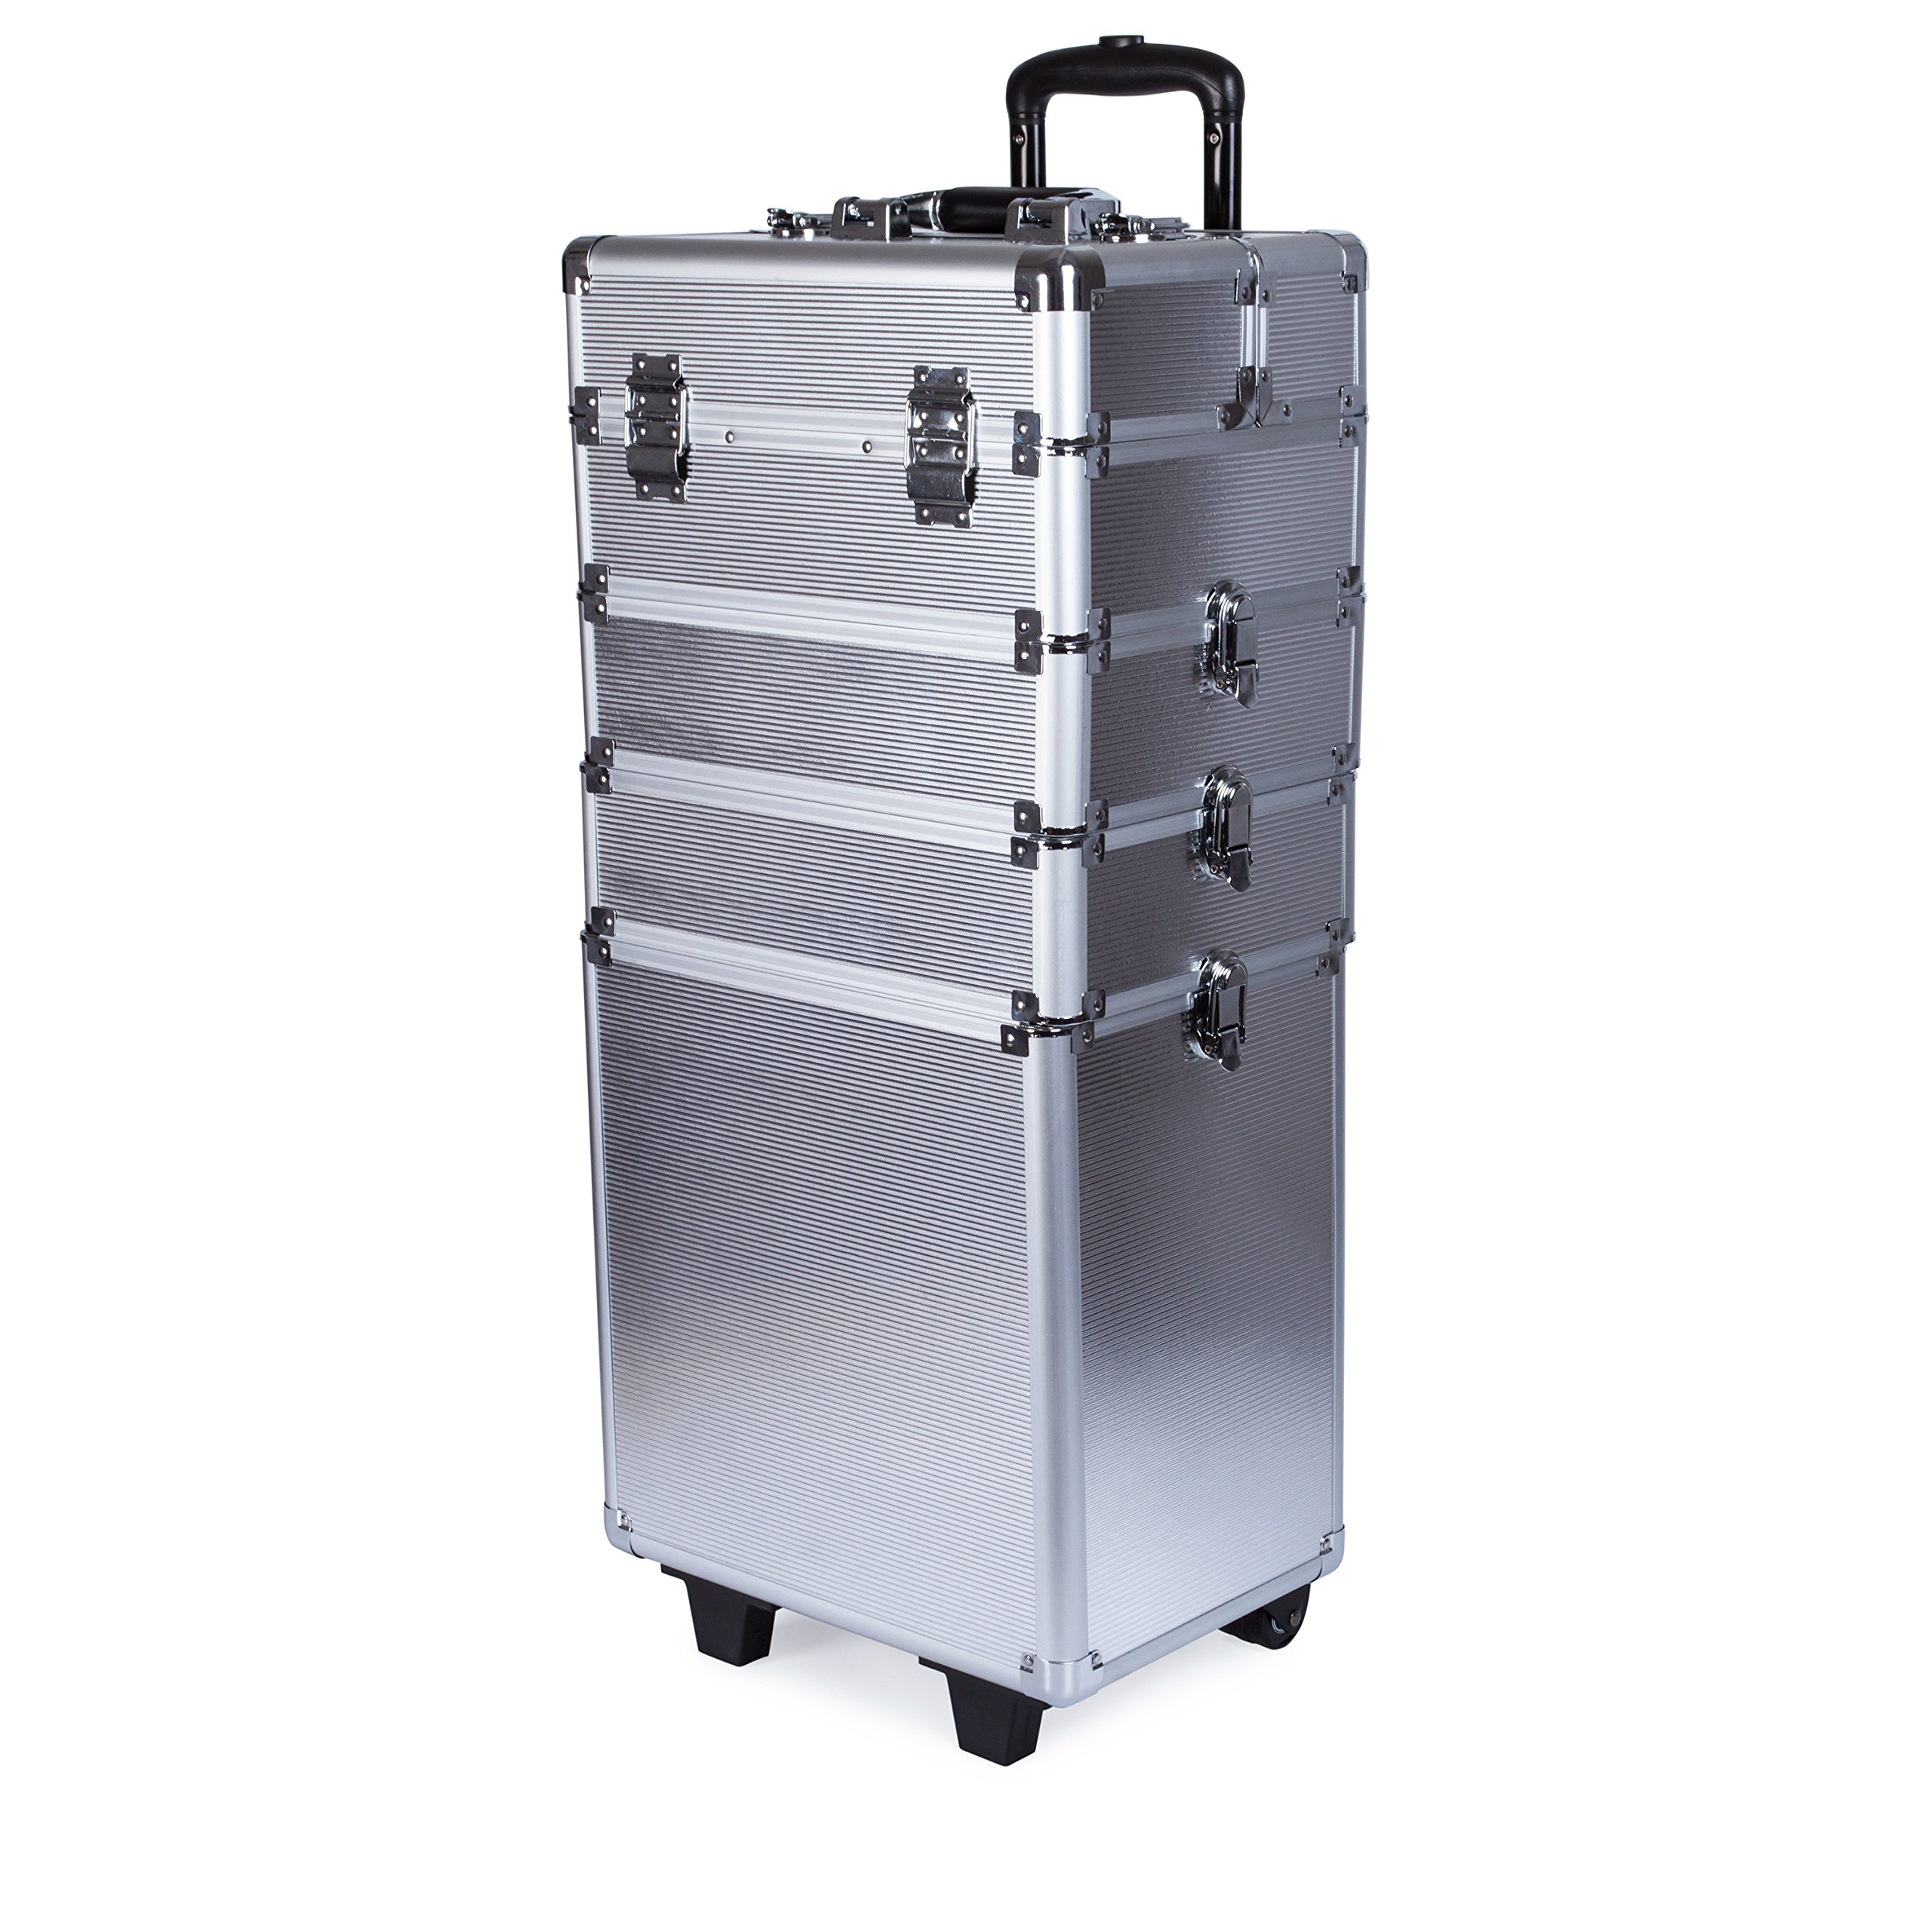 4 in 1 Professional Multifunction Artist Rolling Trolley Makeup Beauty Train Case Cosmetic Organizer (Silver)